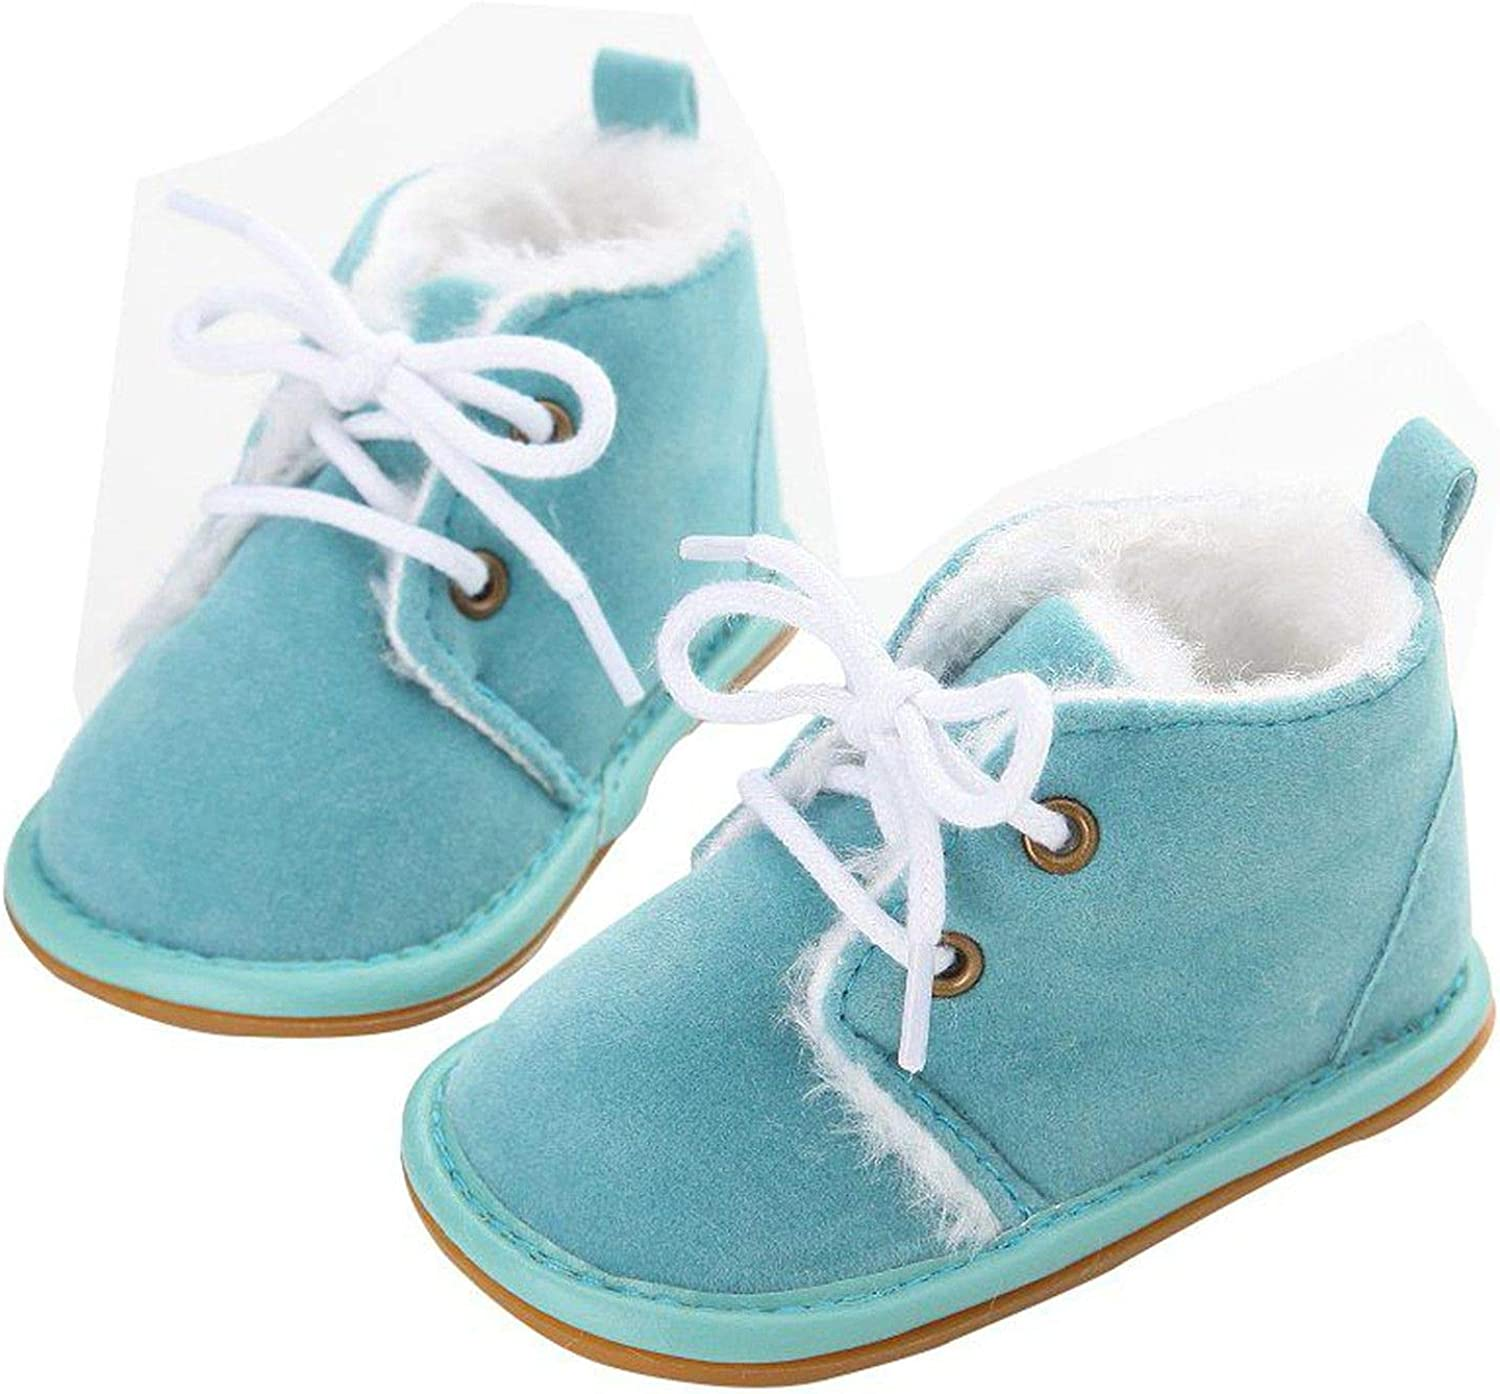 Beautymade Toddler Infant Newborn Baby Boy Girl Winter Fur Snow Boots Warm Shoes Booties Casual First Walkers 0-18M